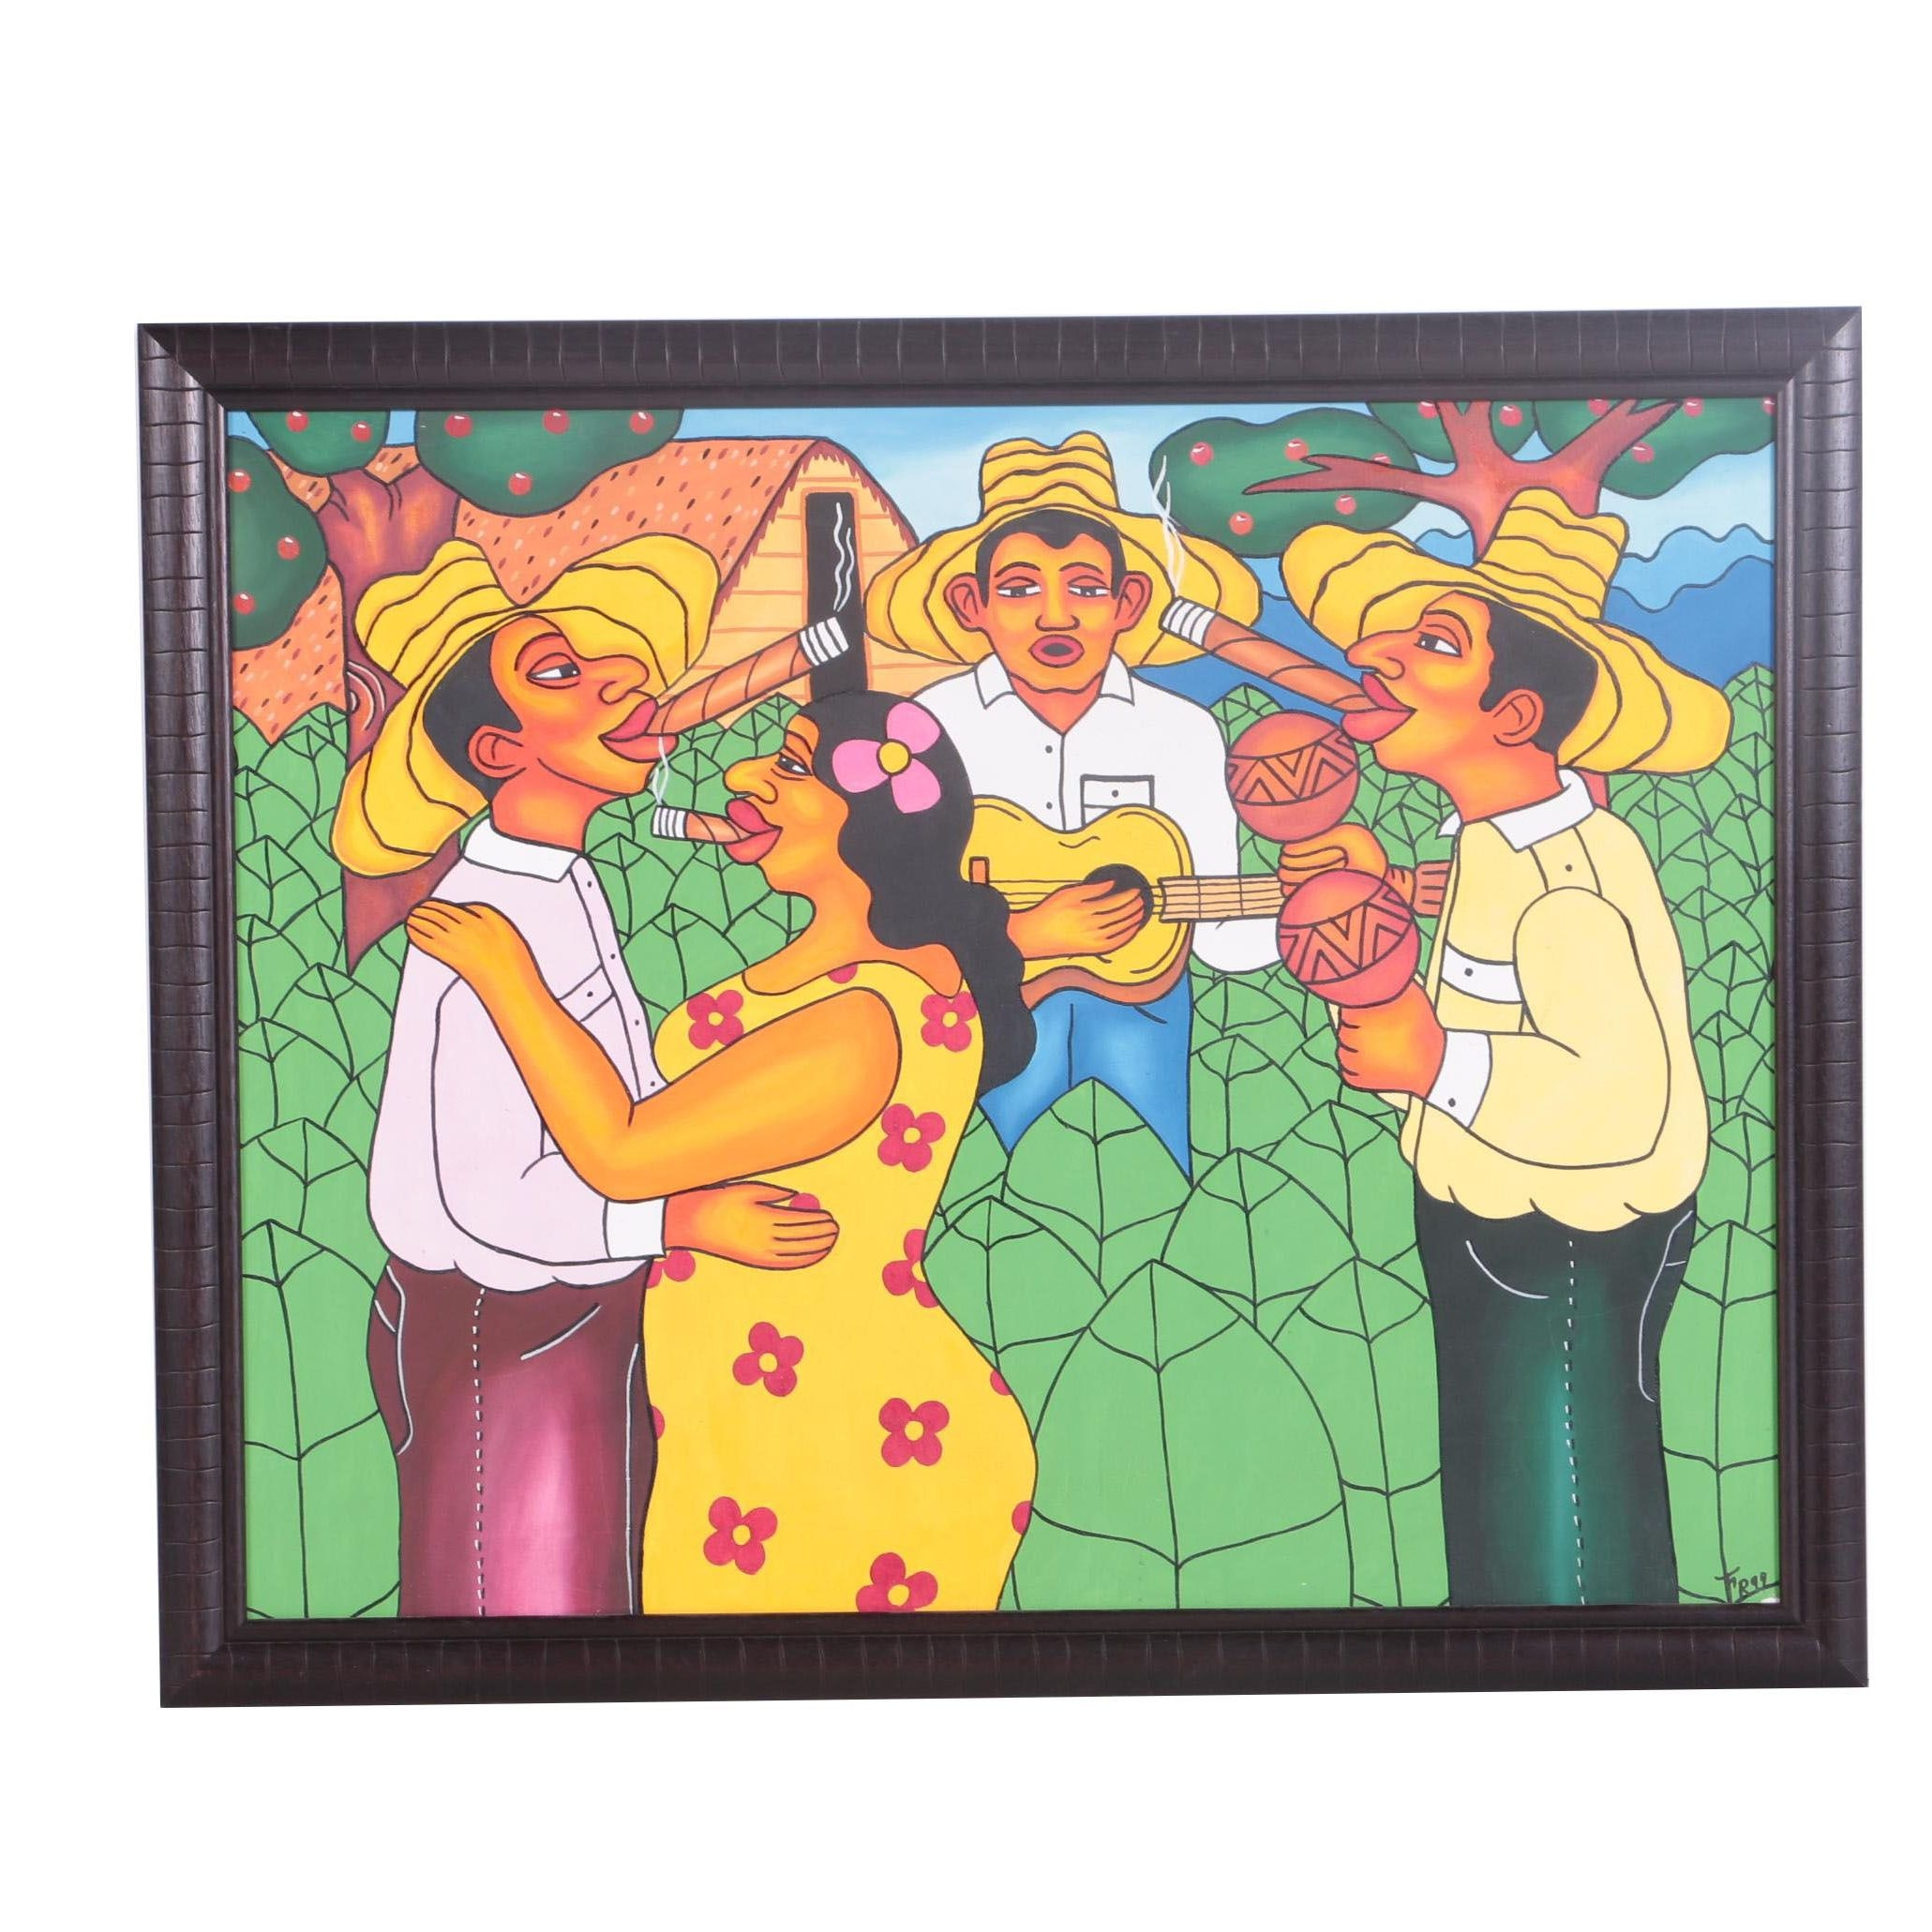 F.R. Oil on Canvas of People Smoking Cigars